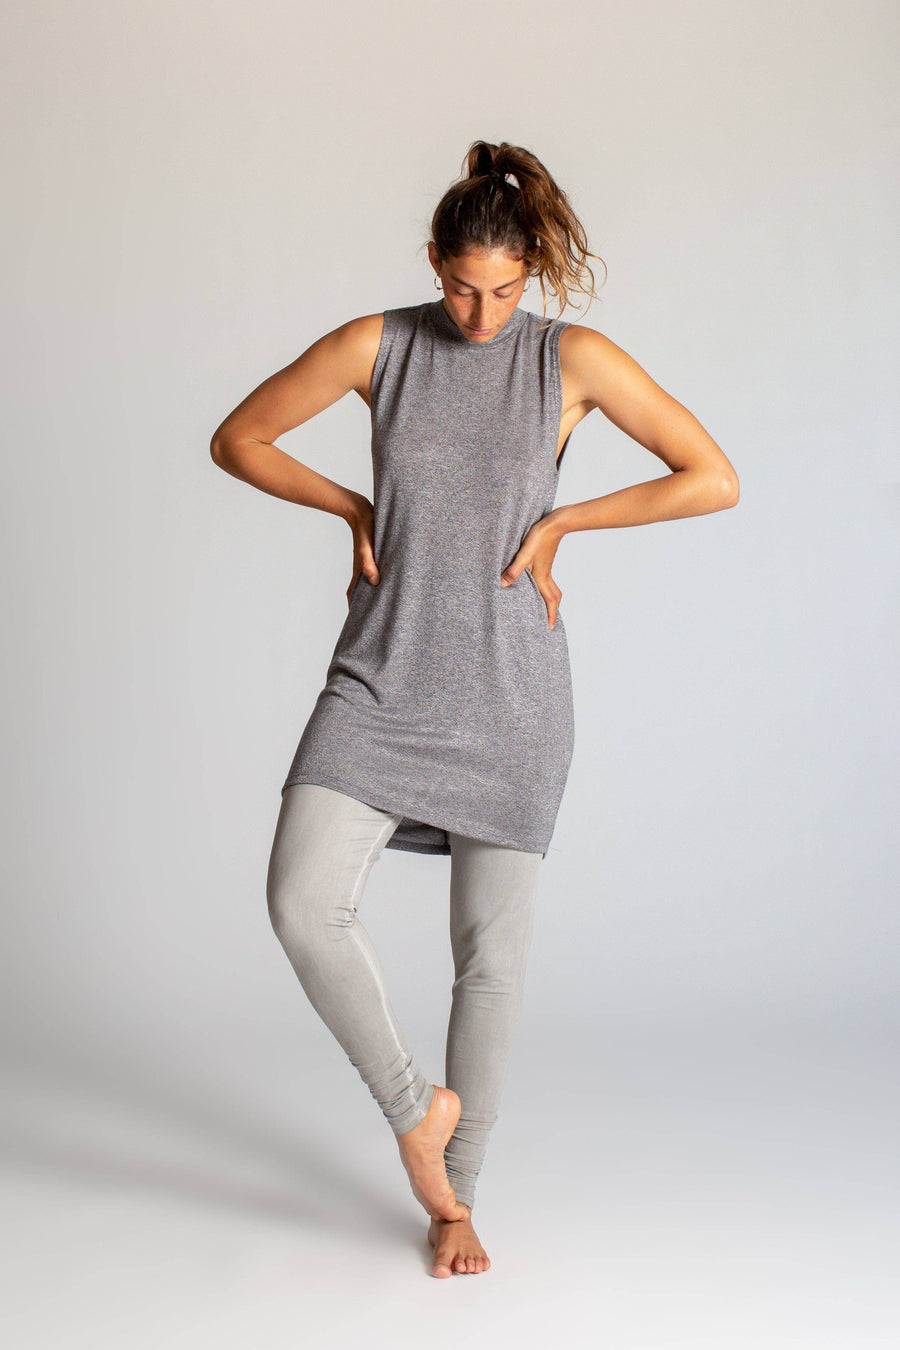 Draped Back Tunic womens clothing rippleyogawear S-M dark grey melange